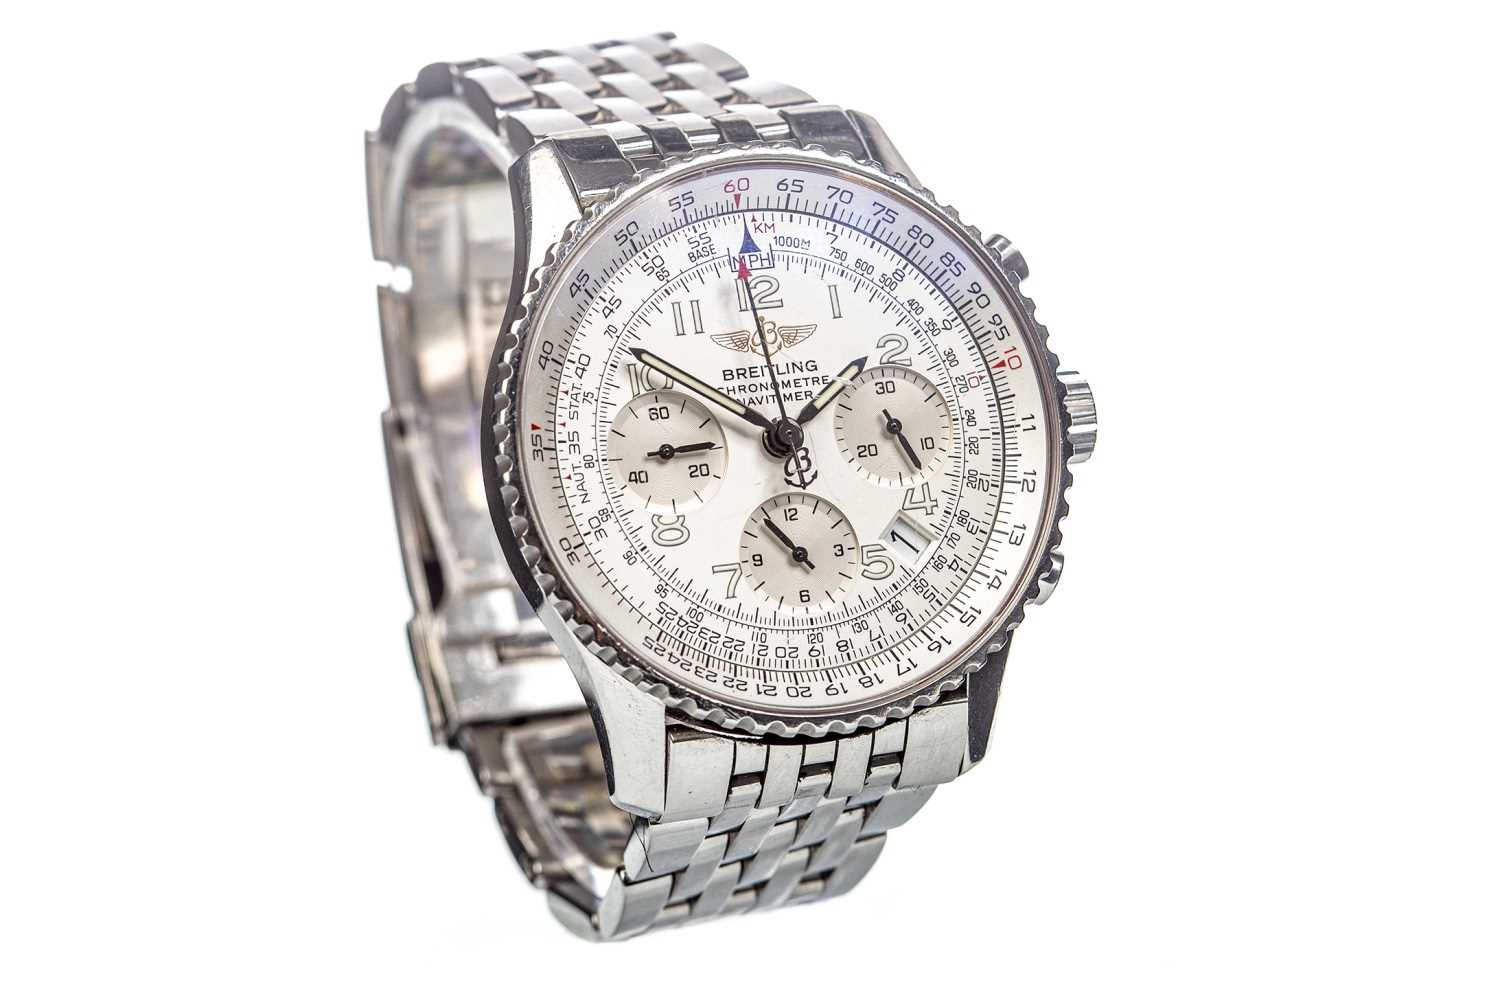 Lot 809-GENTLEMAN'S BREITLING CHRONOMETRE NAVITIMER AUTOMATIC WATCH